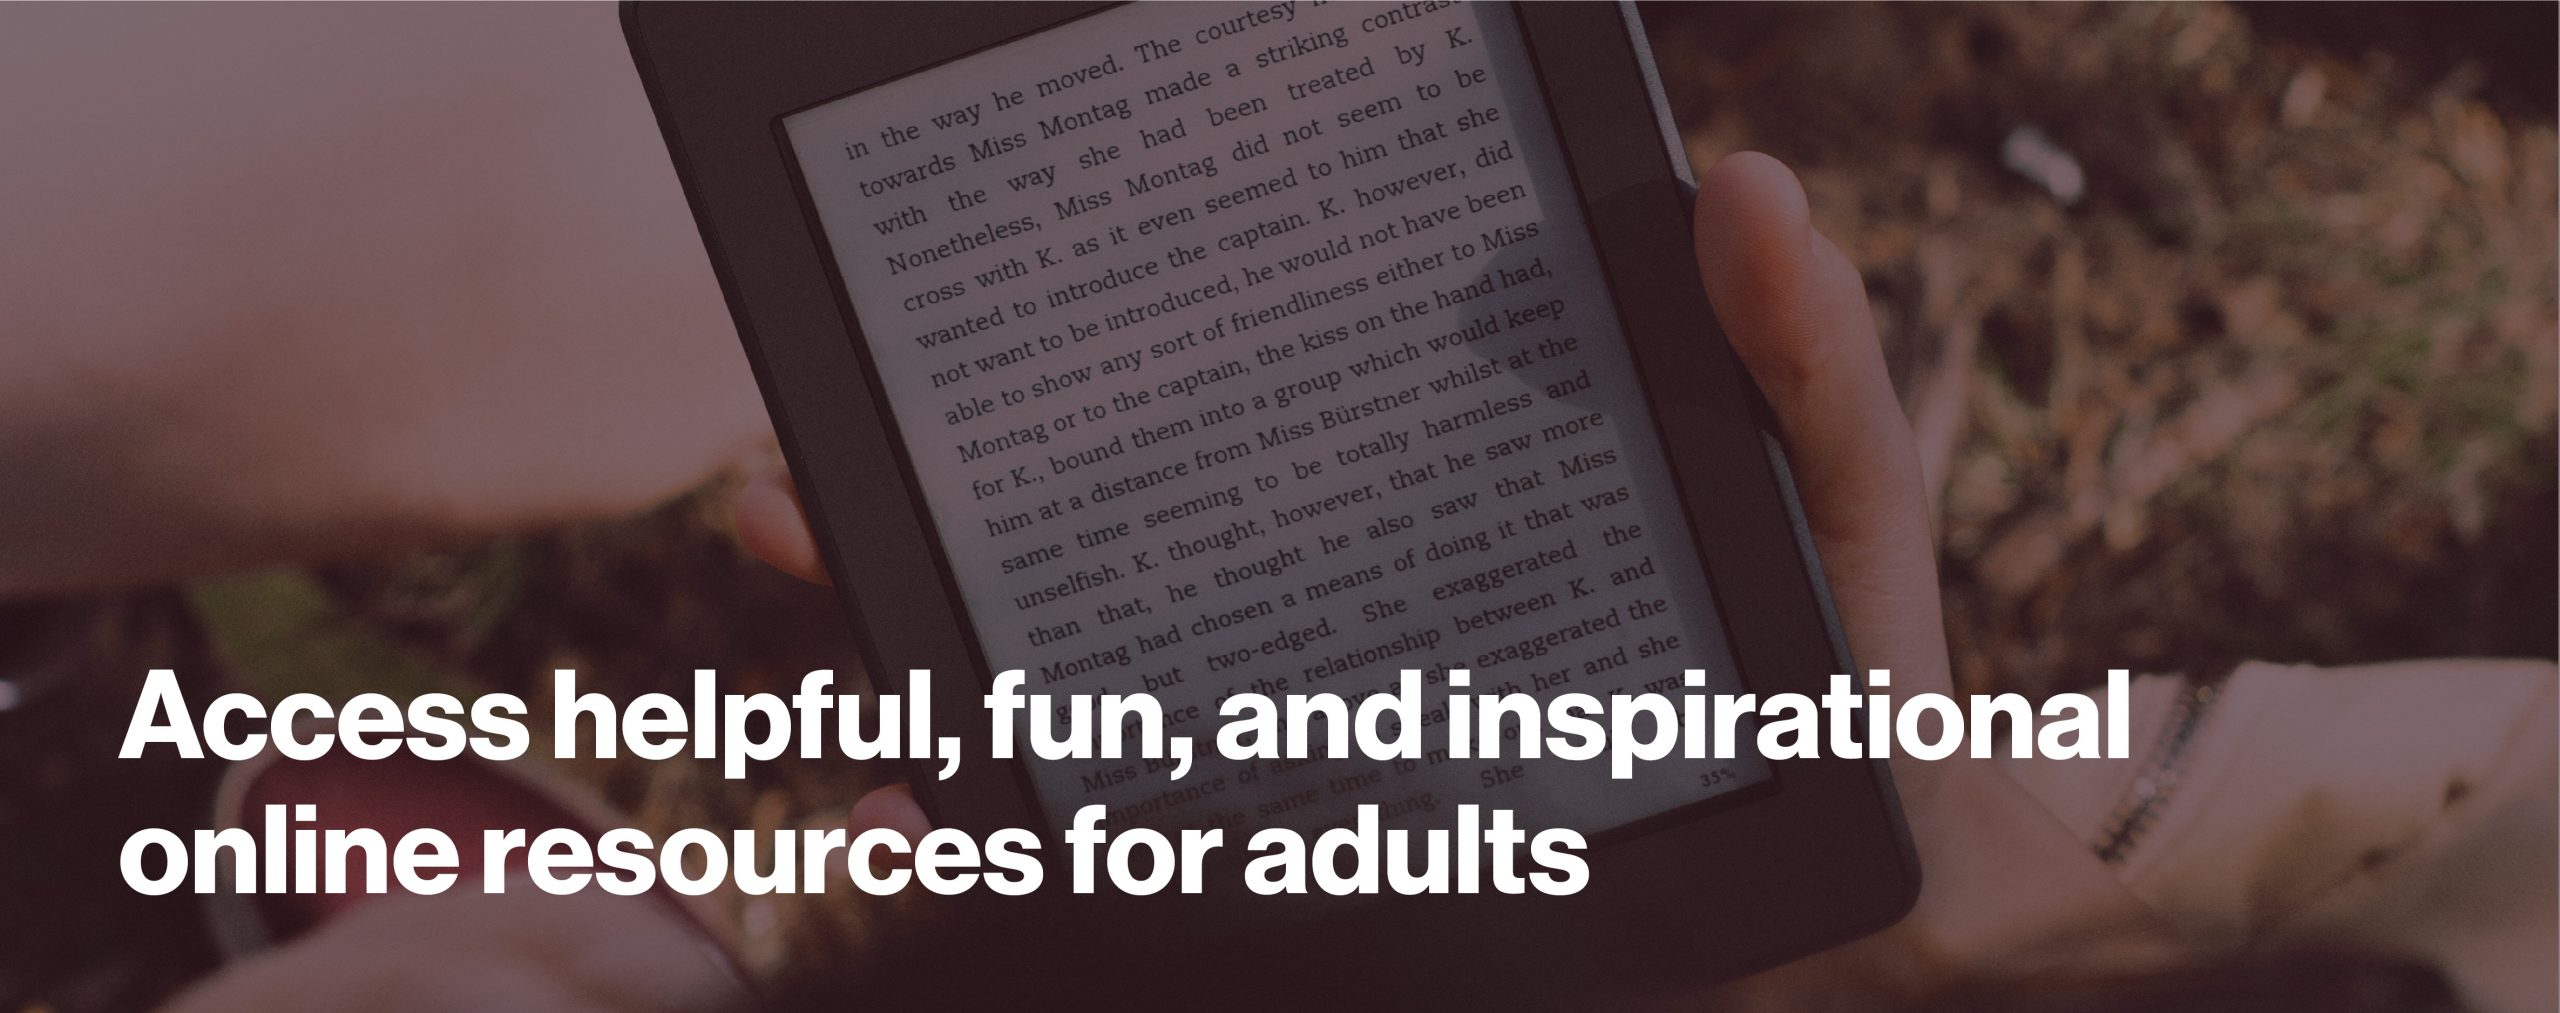 Access helpful, fun, and inspirational online resources for adults